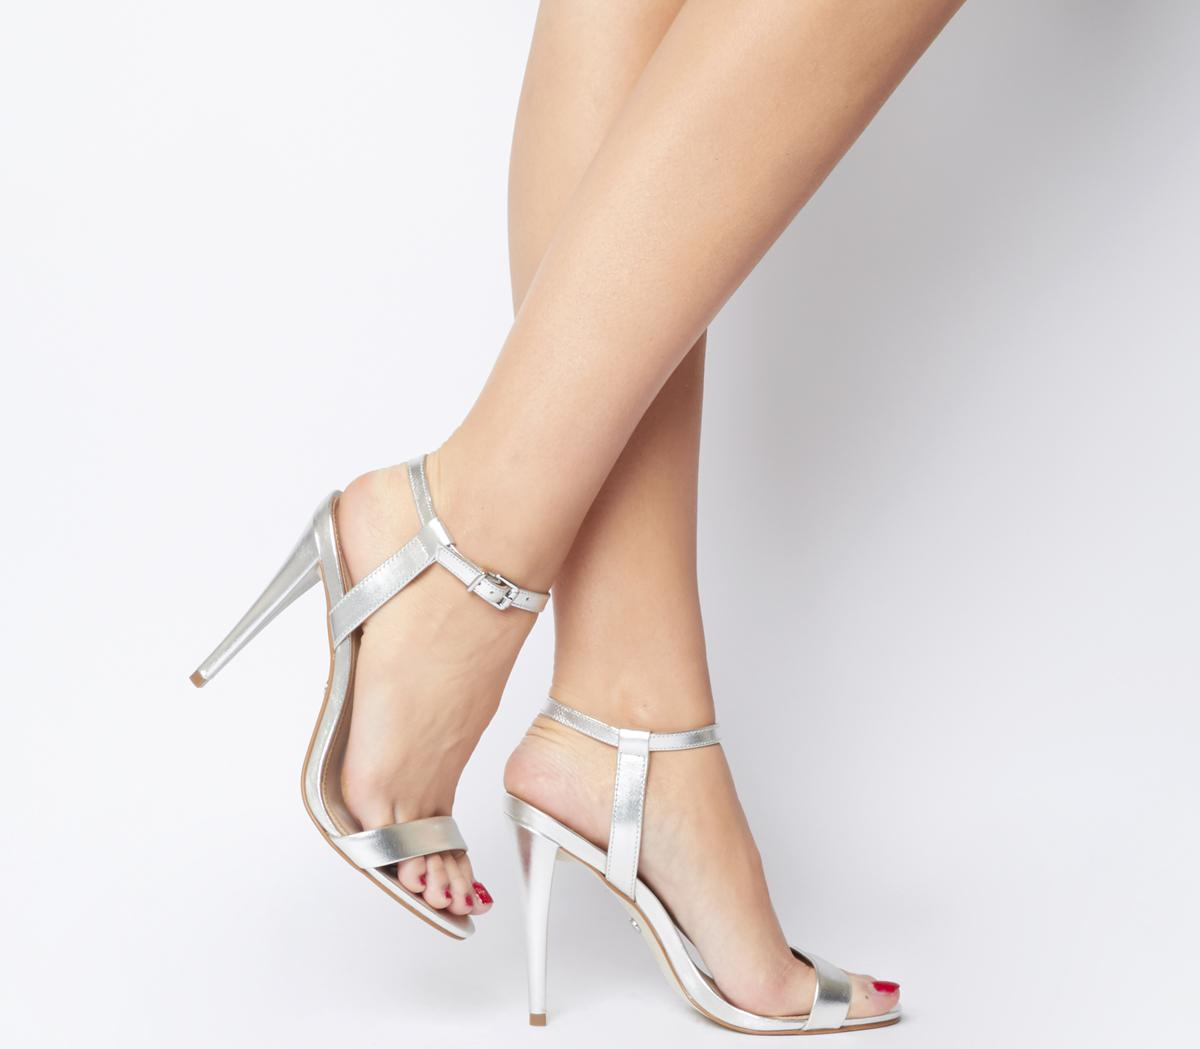 Hotness Heeled Sandals